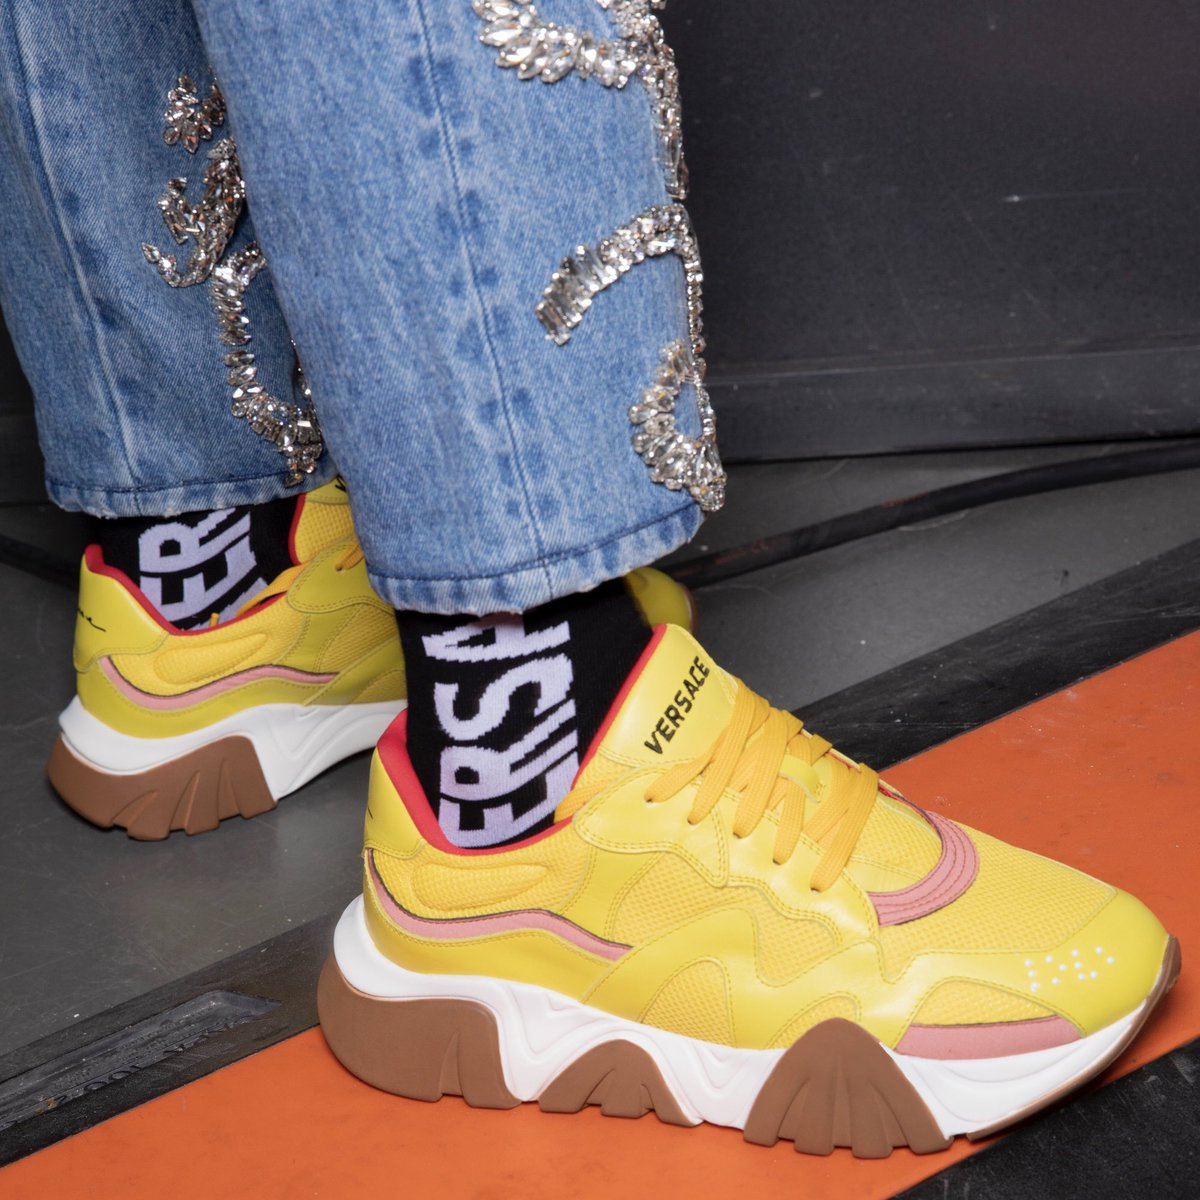 Daring from the feet up - first look at the #VersaceSqualo, the newest Versace sneaker. #VersaceFW19 #MFW